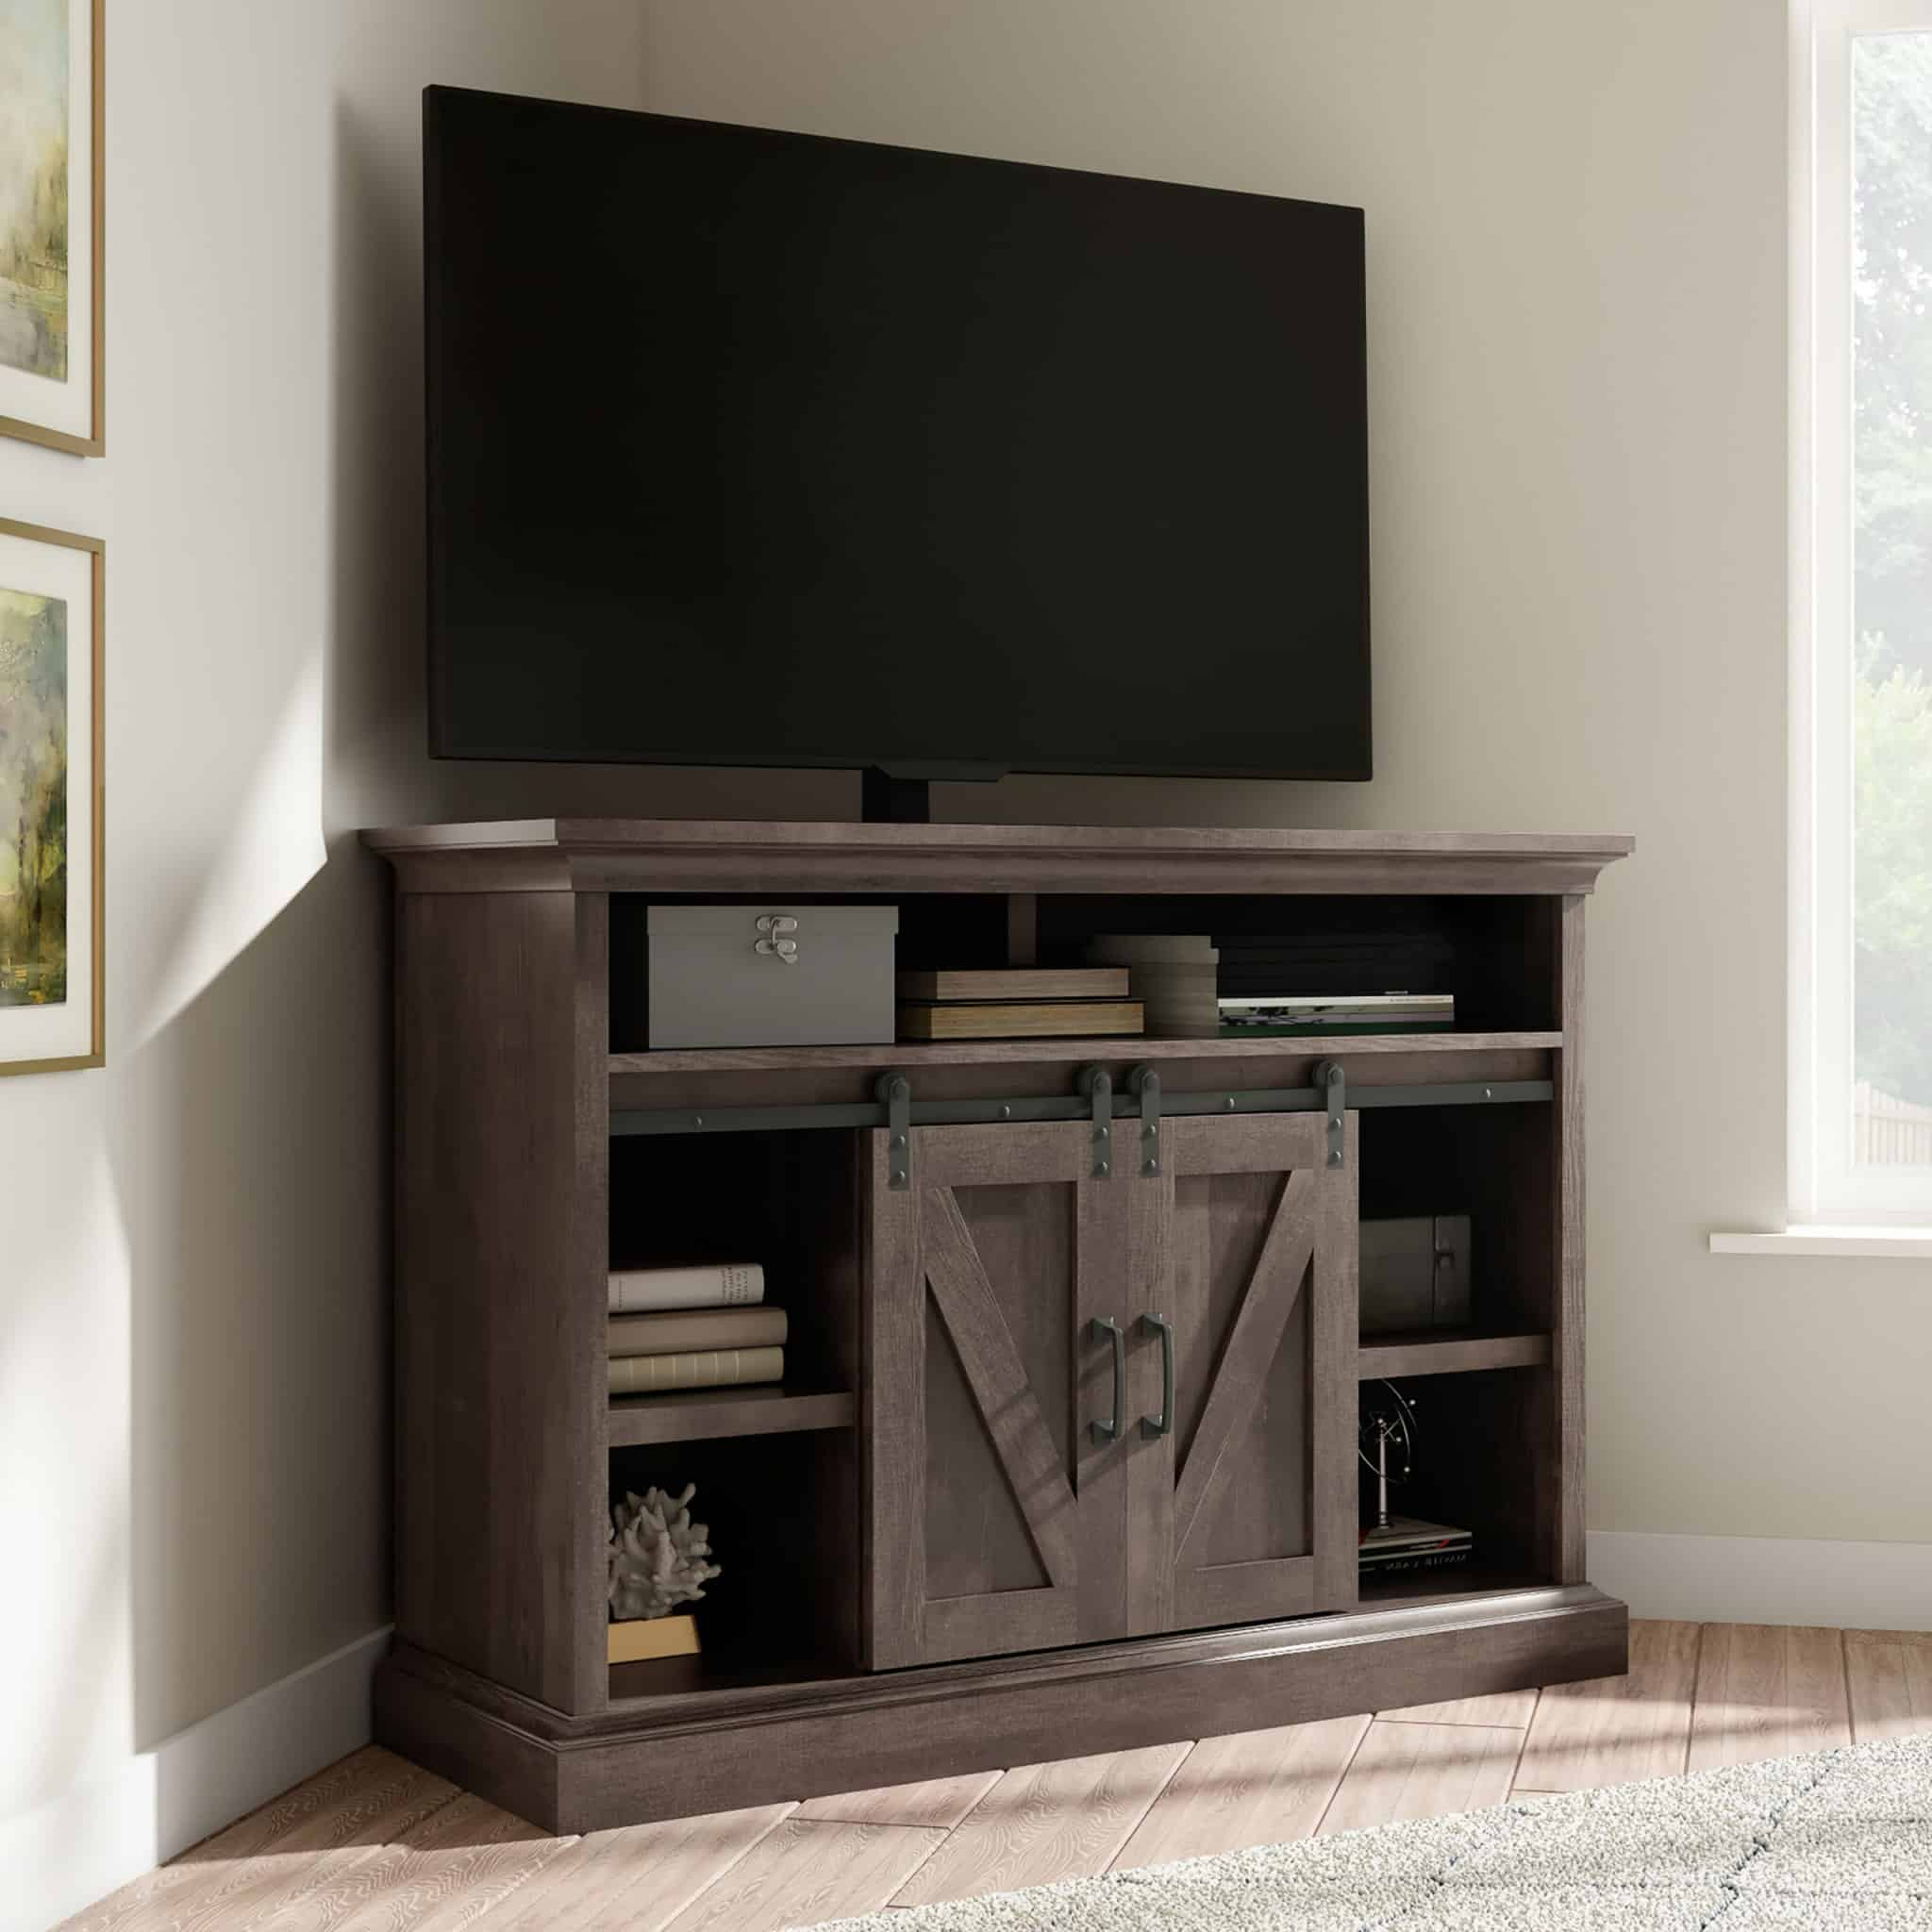 Payton 3 In 1 Tv Stand – Whalen Within Whalen Payton 3 In 1 Flat Panel Tv Stands With Multiple Finishes (View 6 of 20)